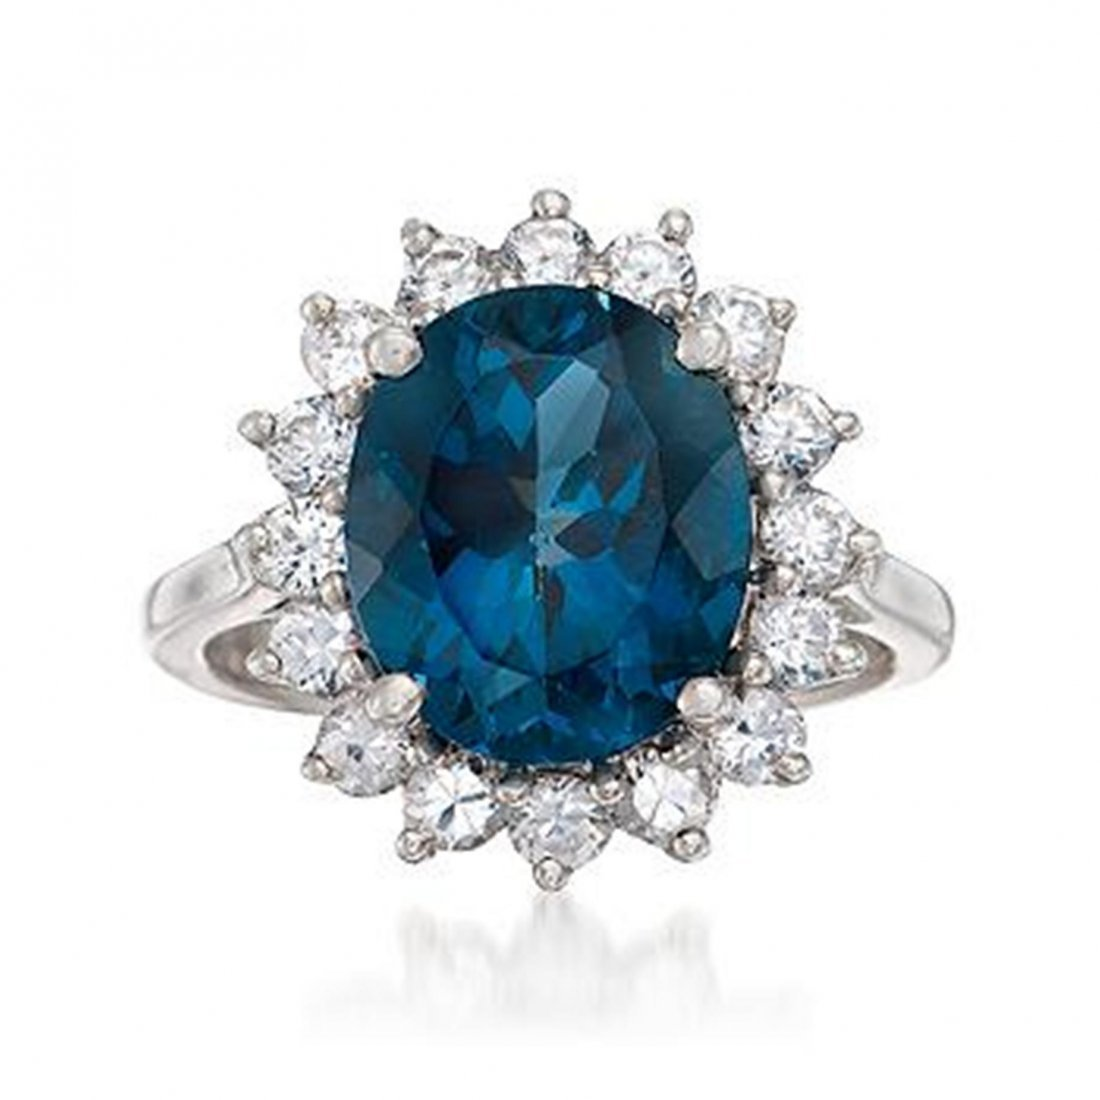 5.40 Carat London Blue Topaz and 1.10 ct. t.w. White To